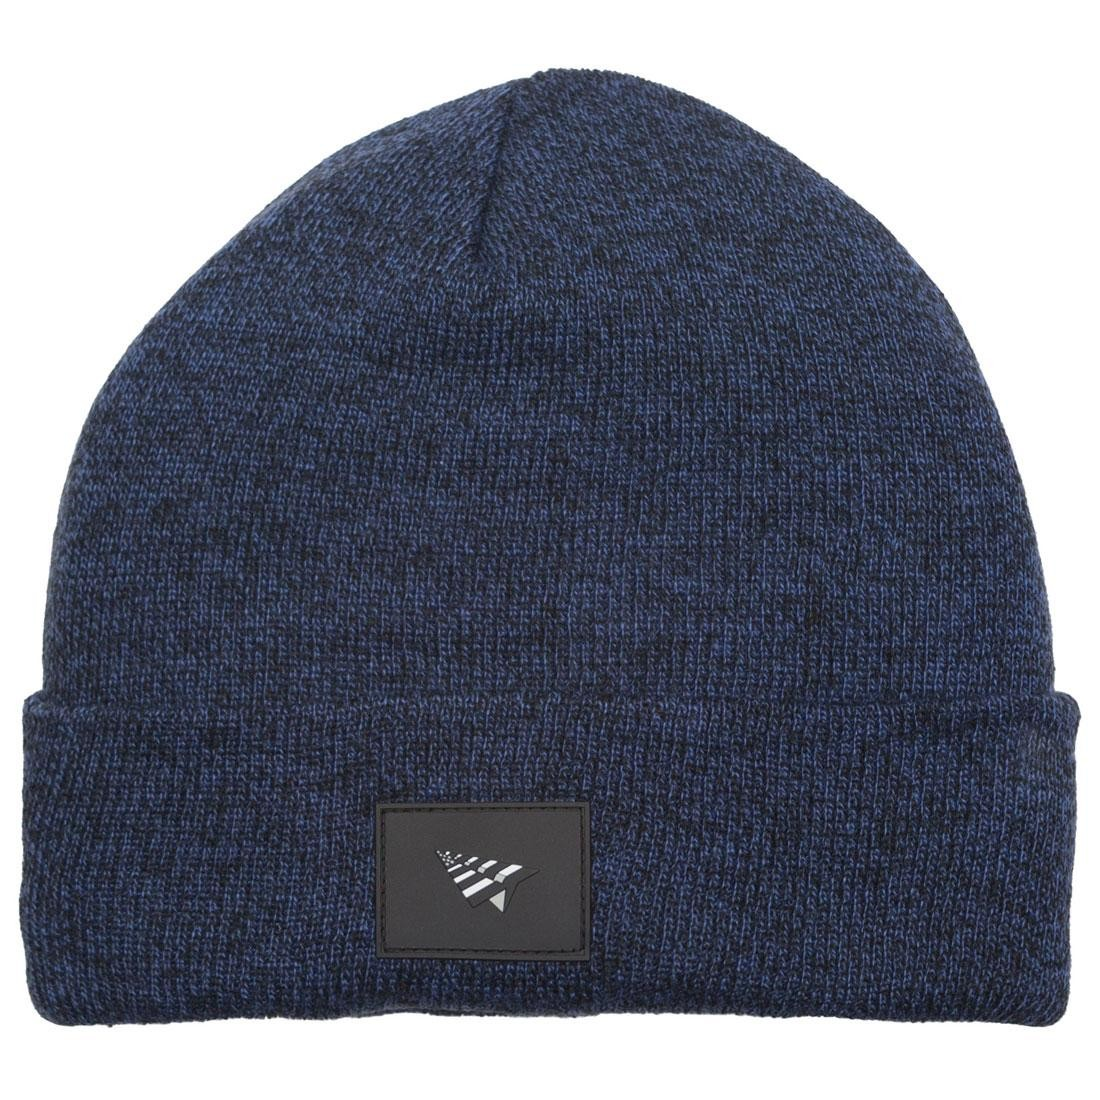 Paper Planes Skully Beanie (navy)